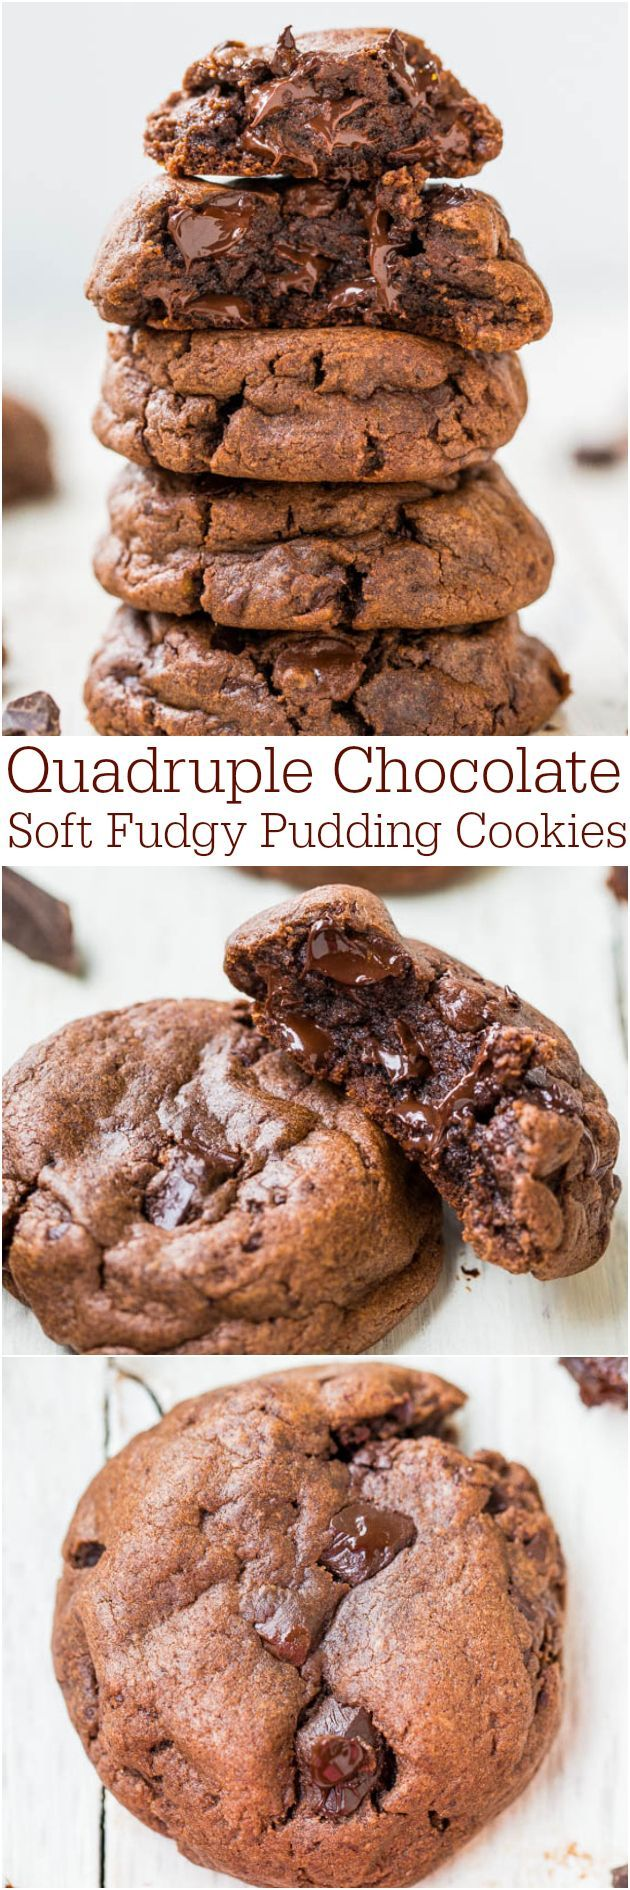 Quadruple Chocolate Soft Fudgy Pudding Cookies - Super soft and loaded with chocolate! AverieCooks.com #desserts #snacks